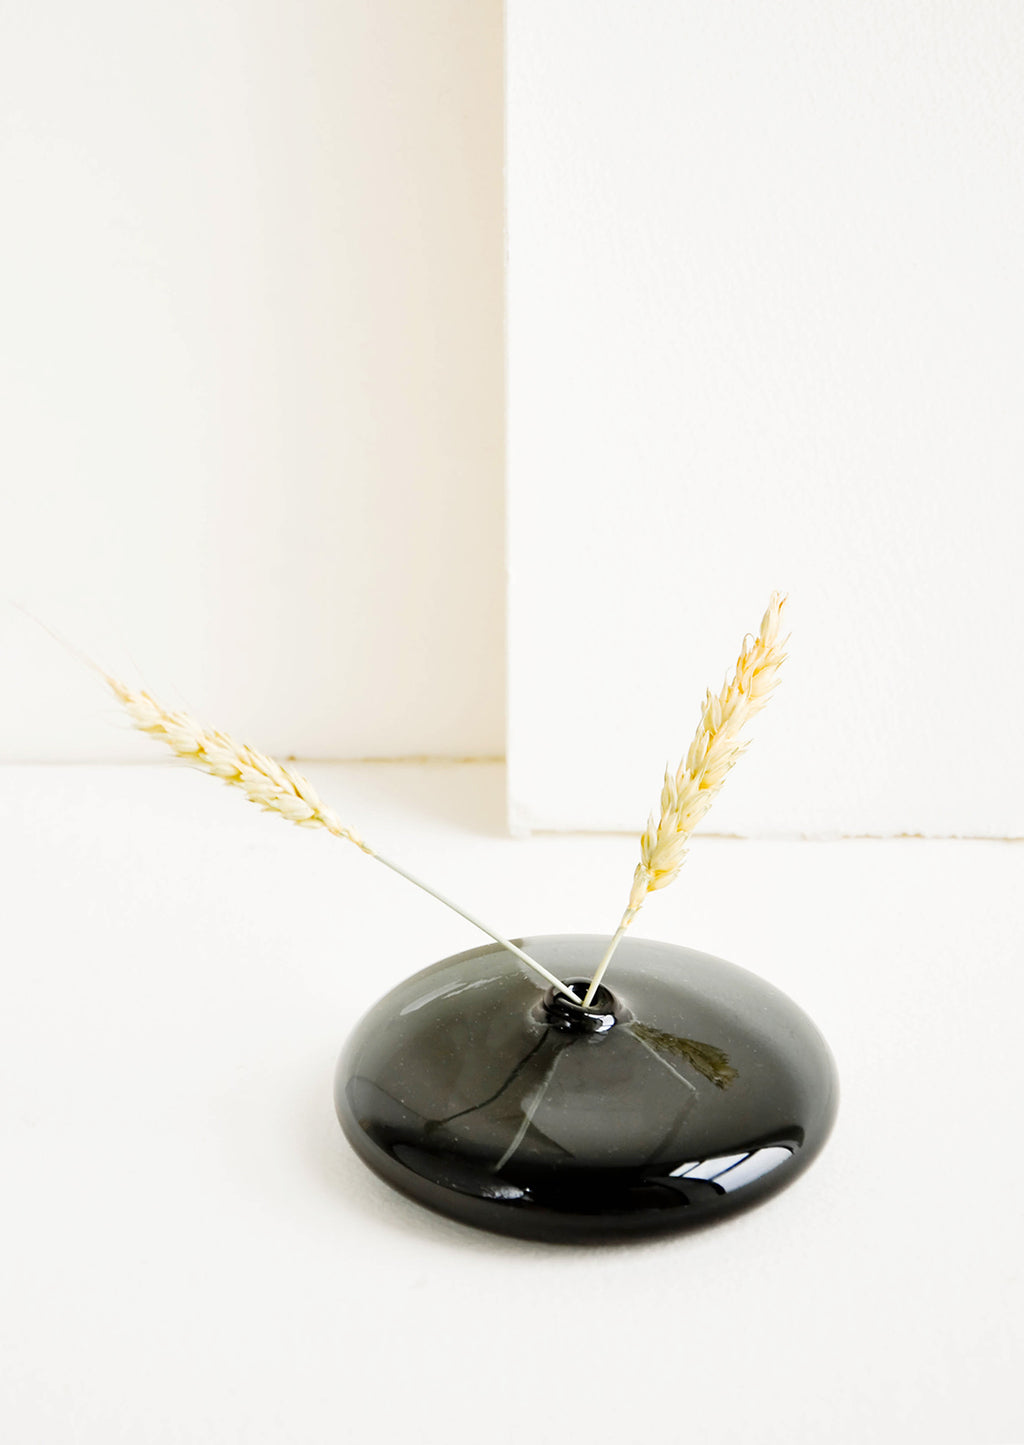 Low / Shadow: Small bud vase in translucent black glass, in a shallow flat shape displayed with decorative straw